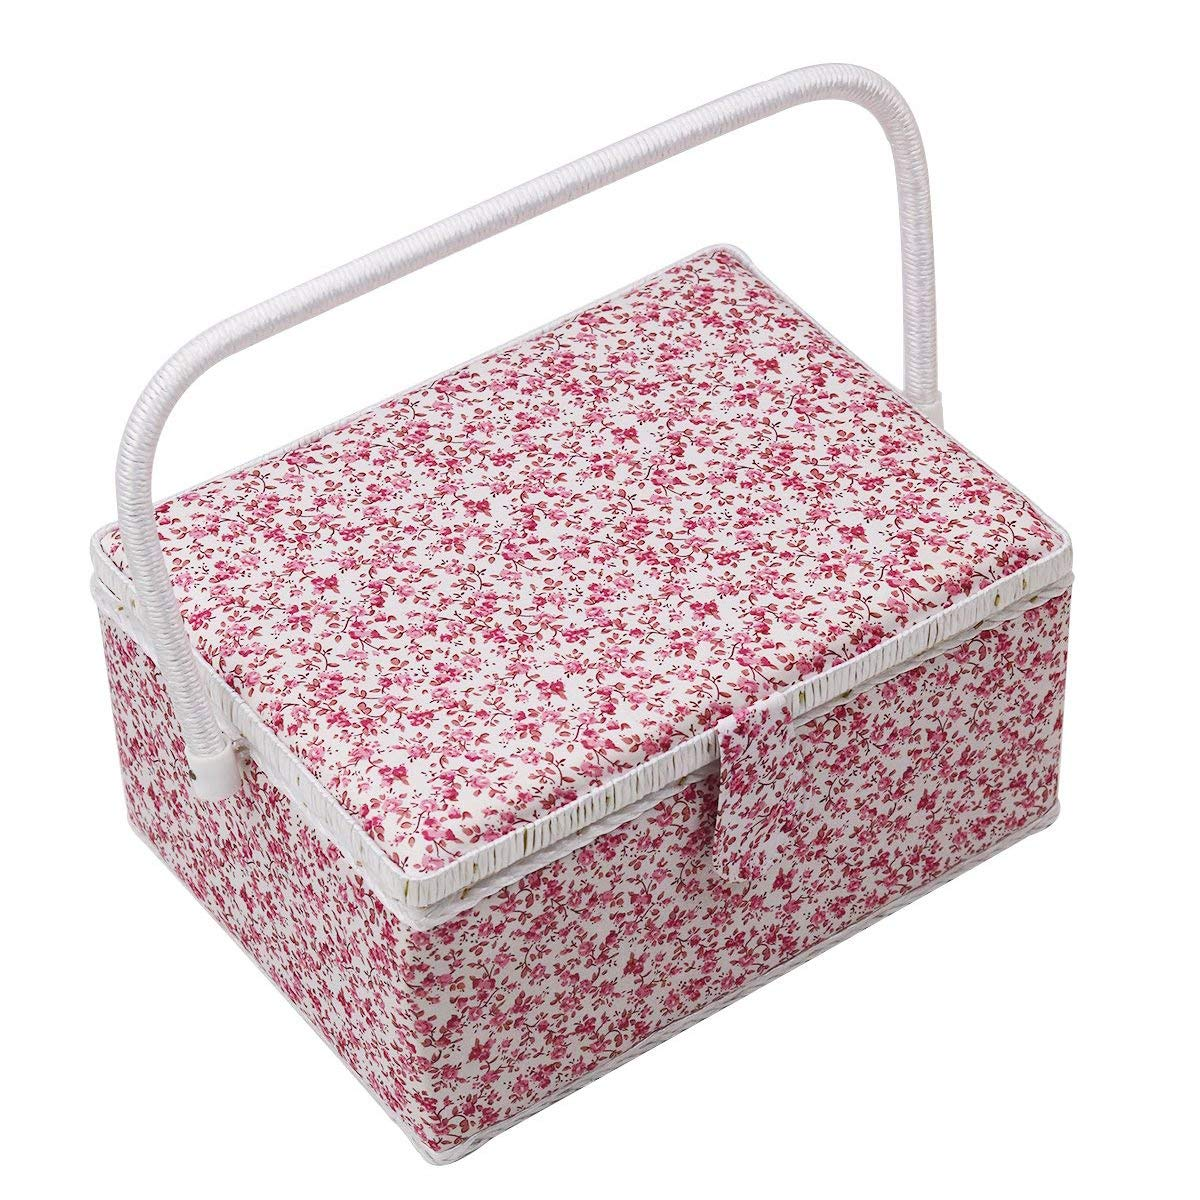 D&D Sewing Box Large - Flower Notions Basket (lavender)